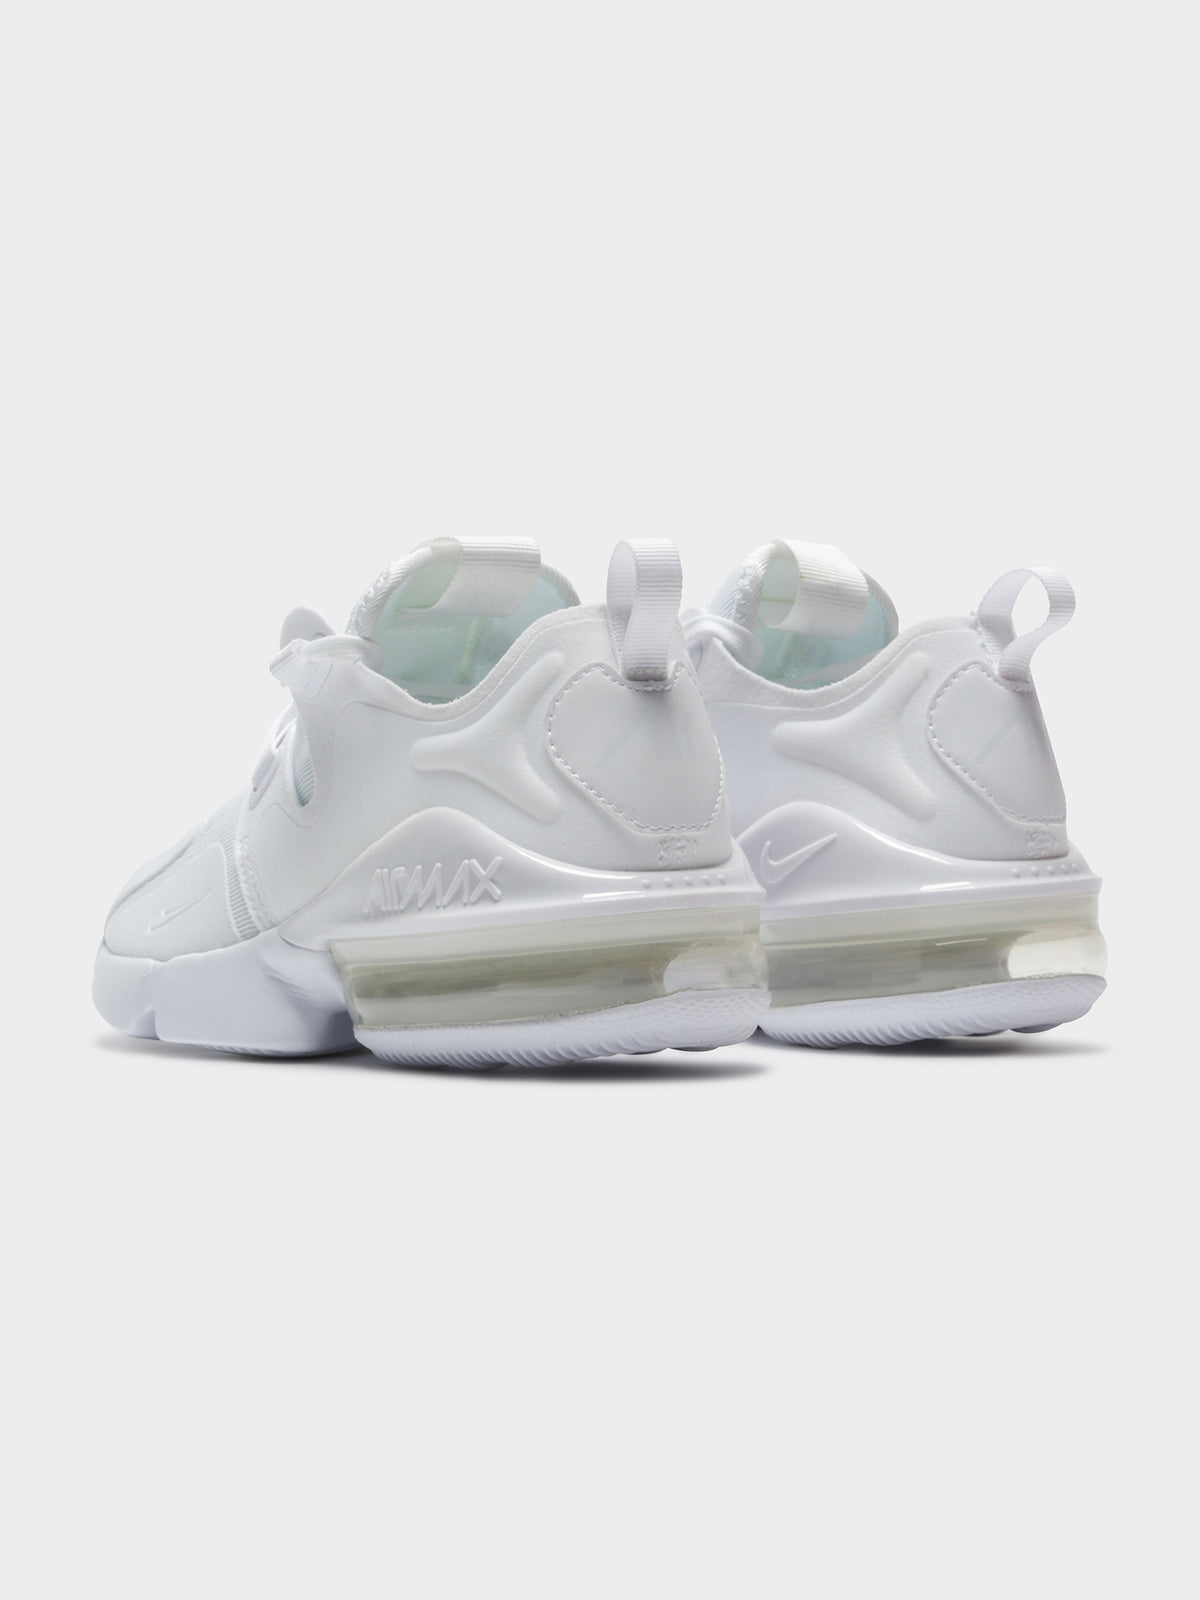 Womens Air Max Infinity Sneakers in White